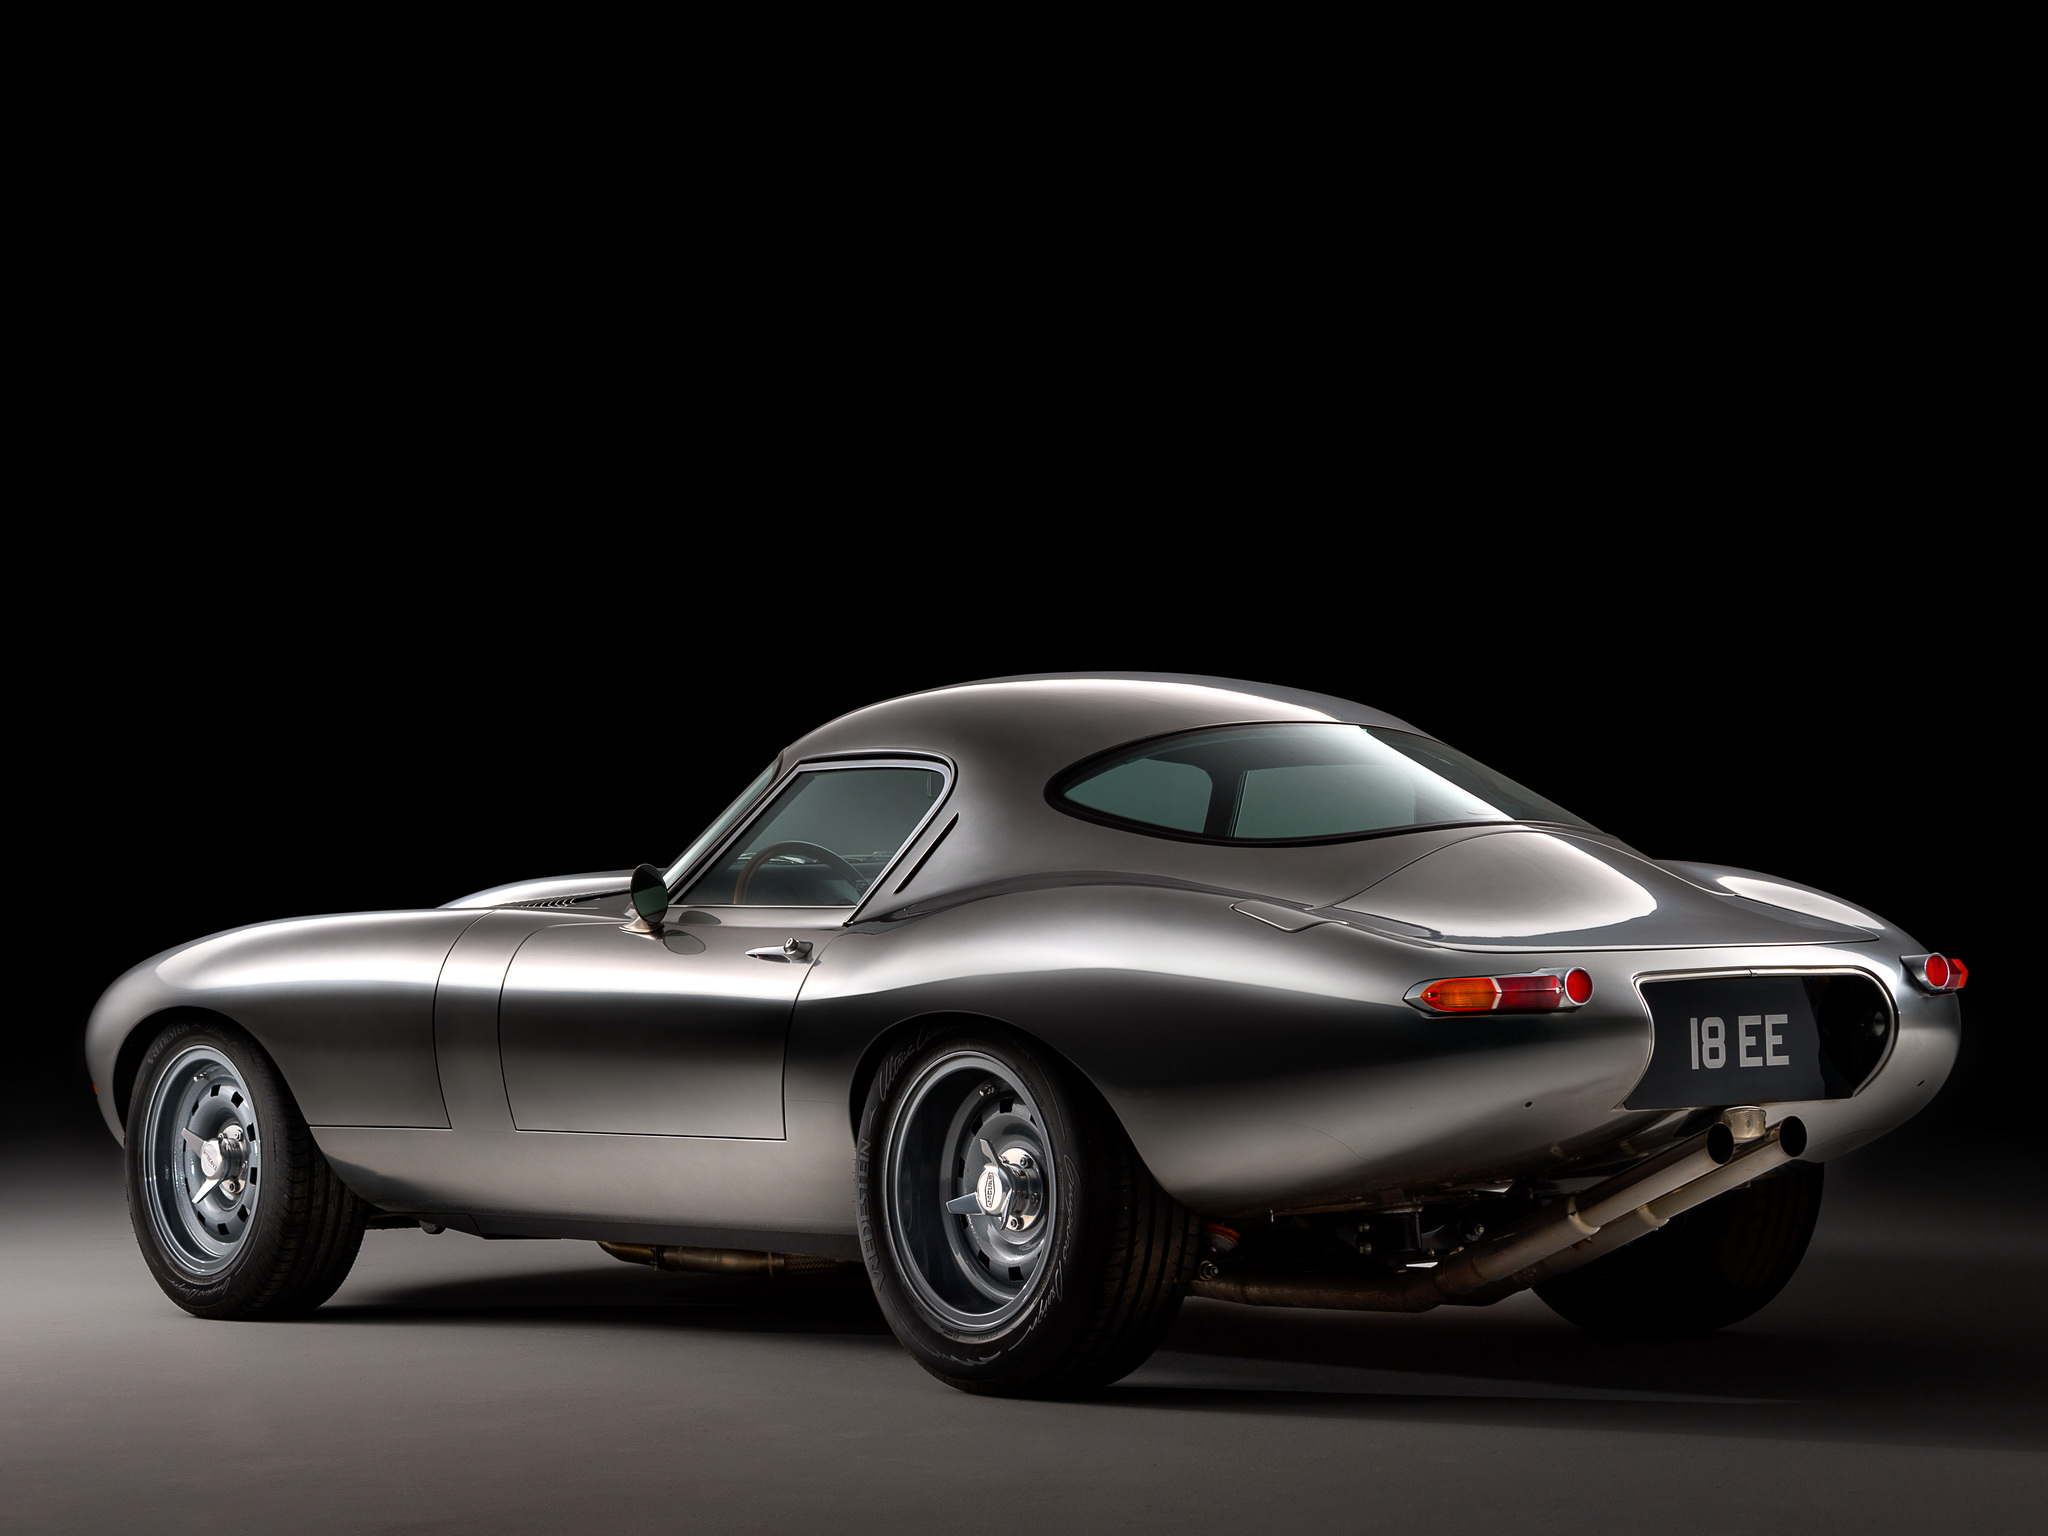 2013 Jaguar Eagle Speedster Low Drag G T Supercar F HD Wallpapers Download free images and photos [musssic.tk]